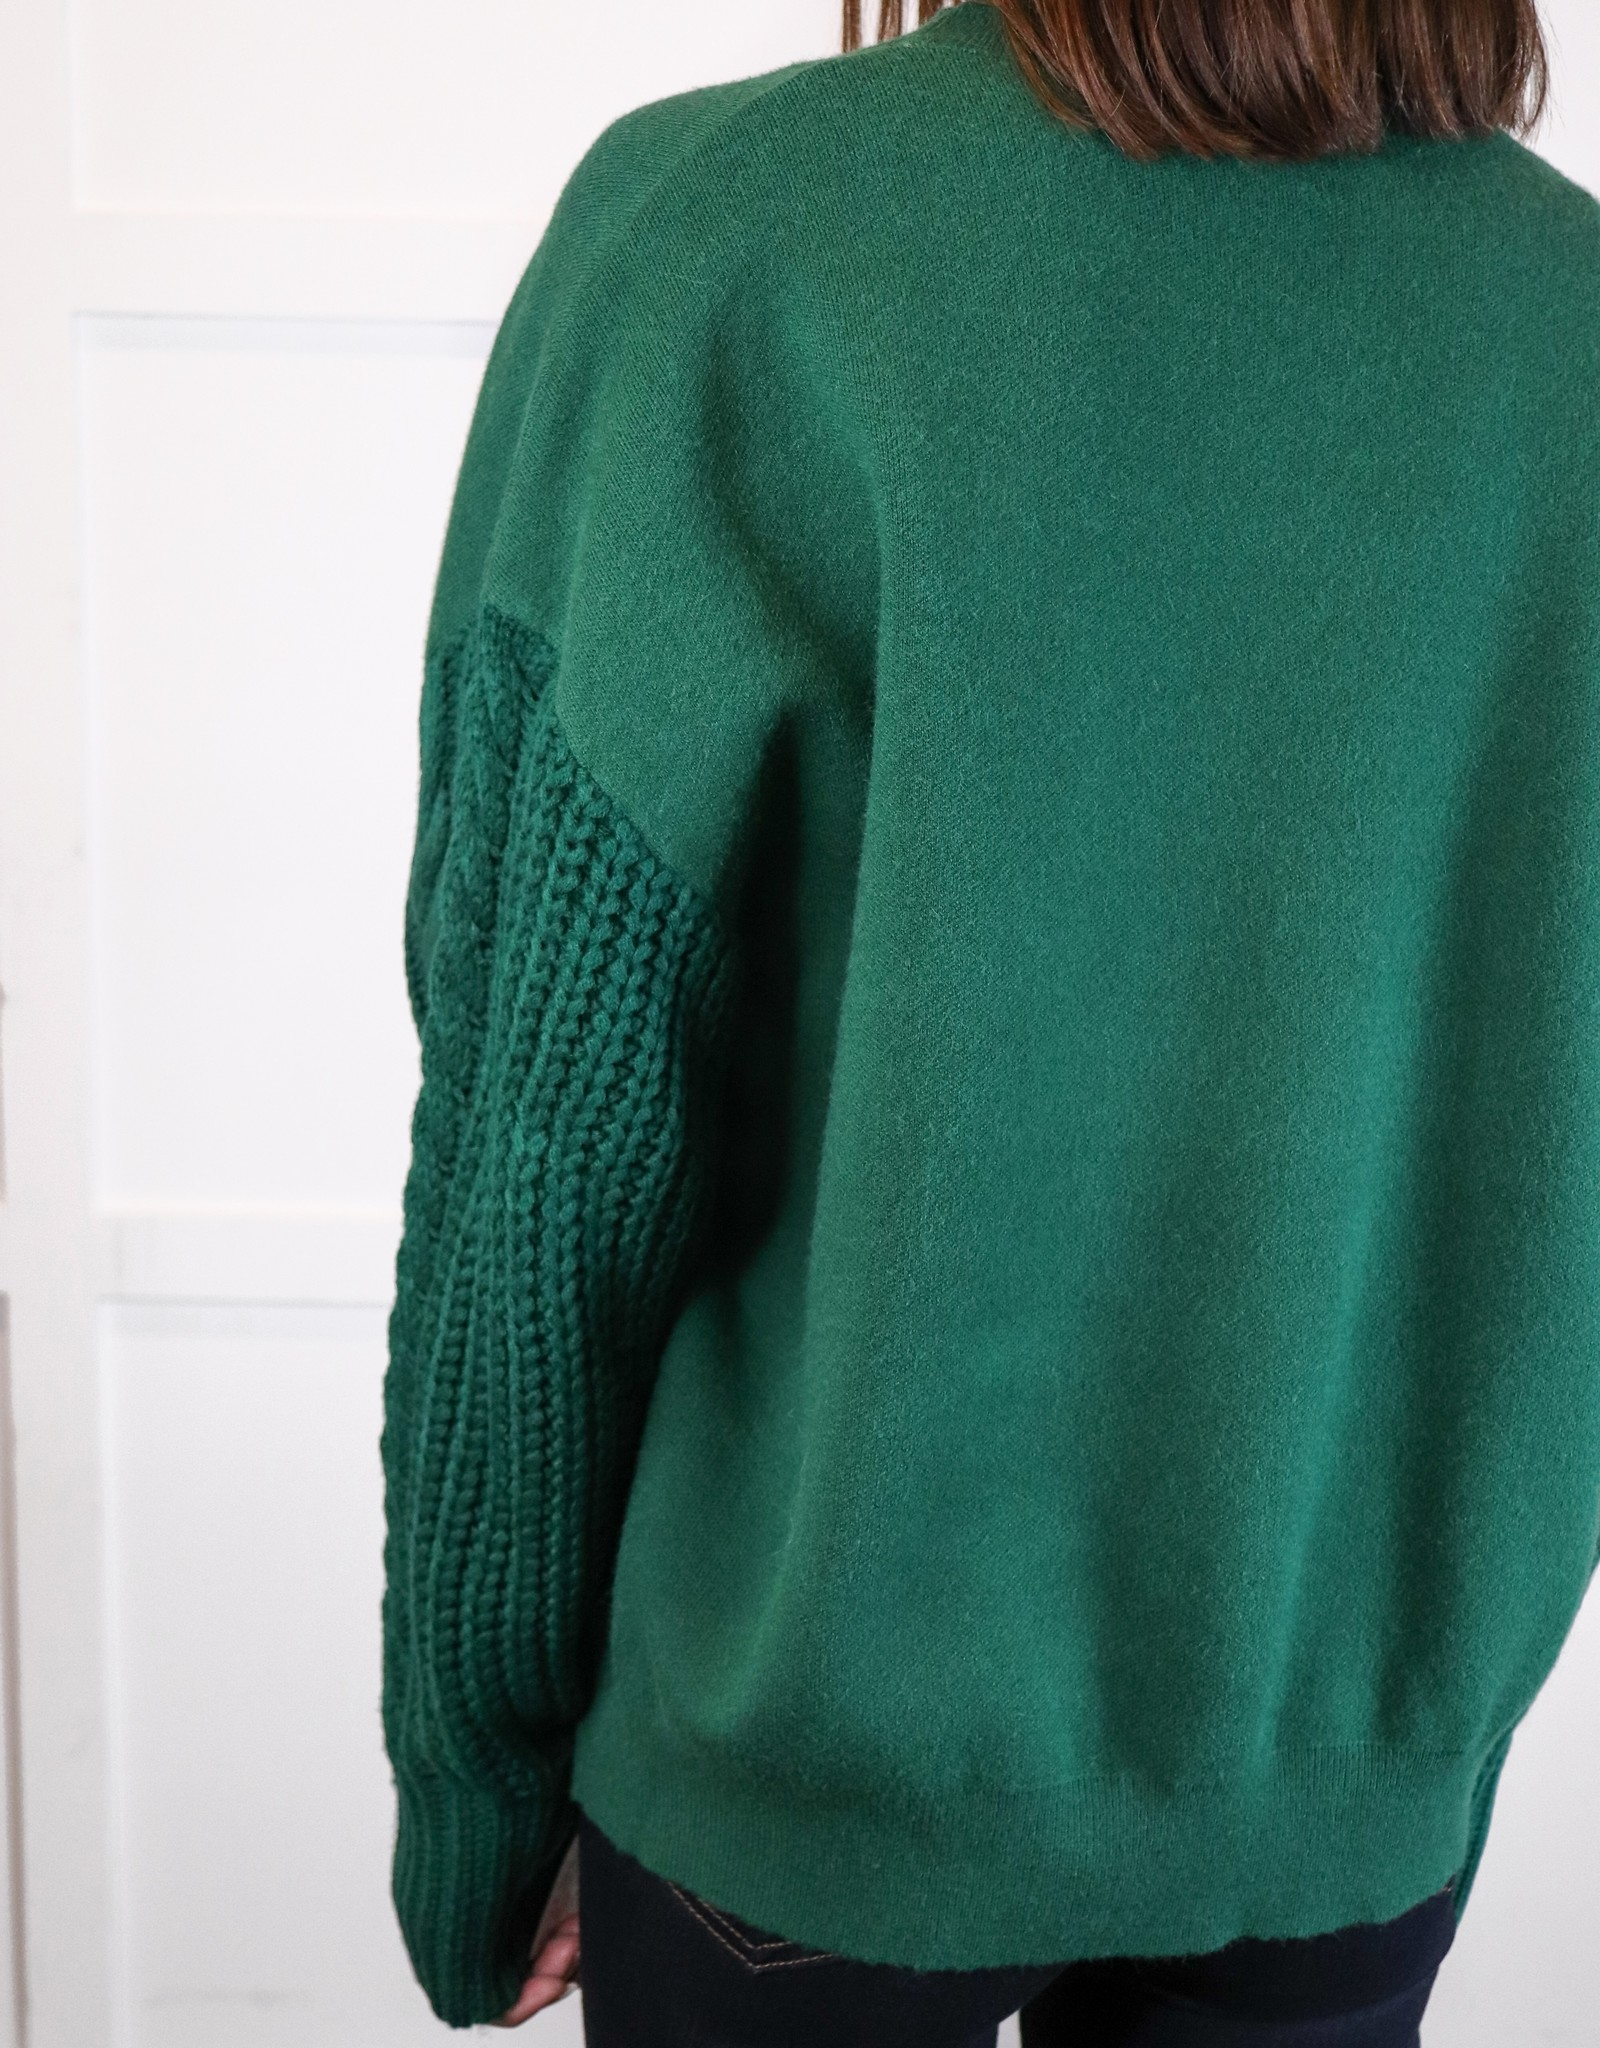 HUSH Crewneck w/ cable knit slv